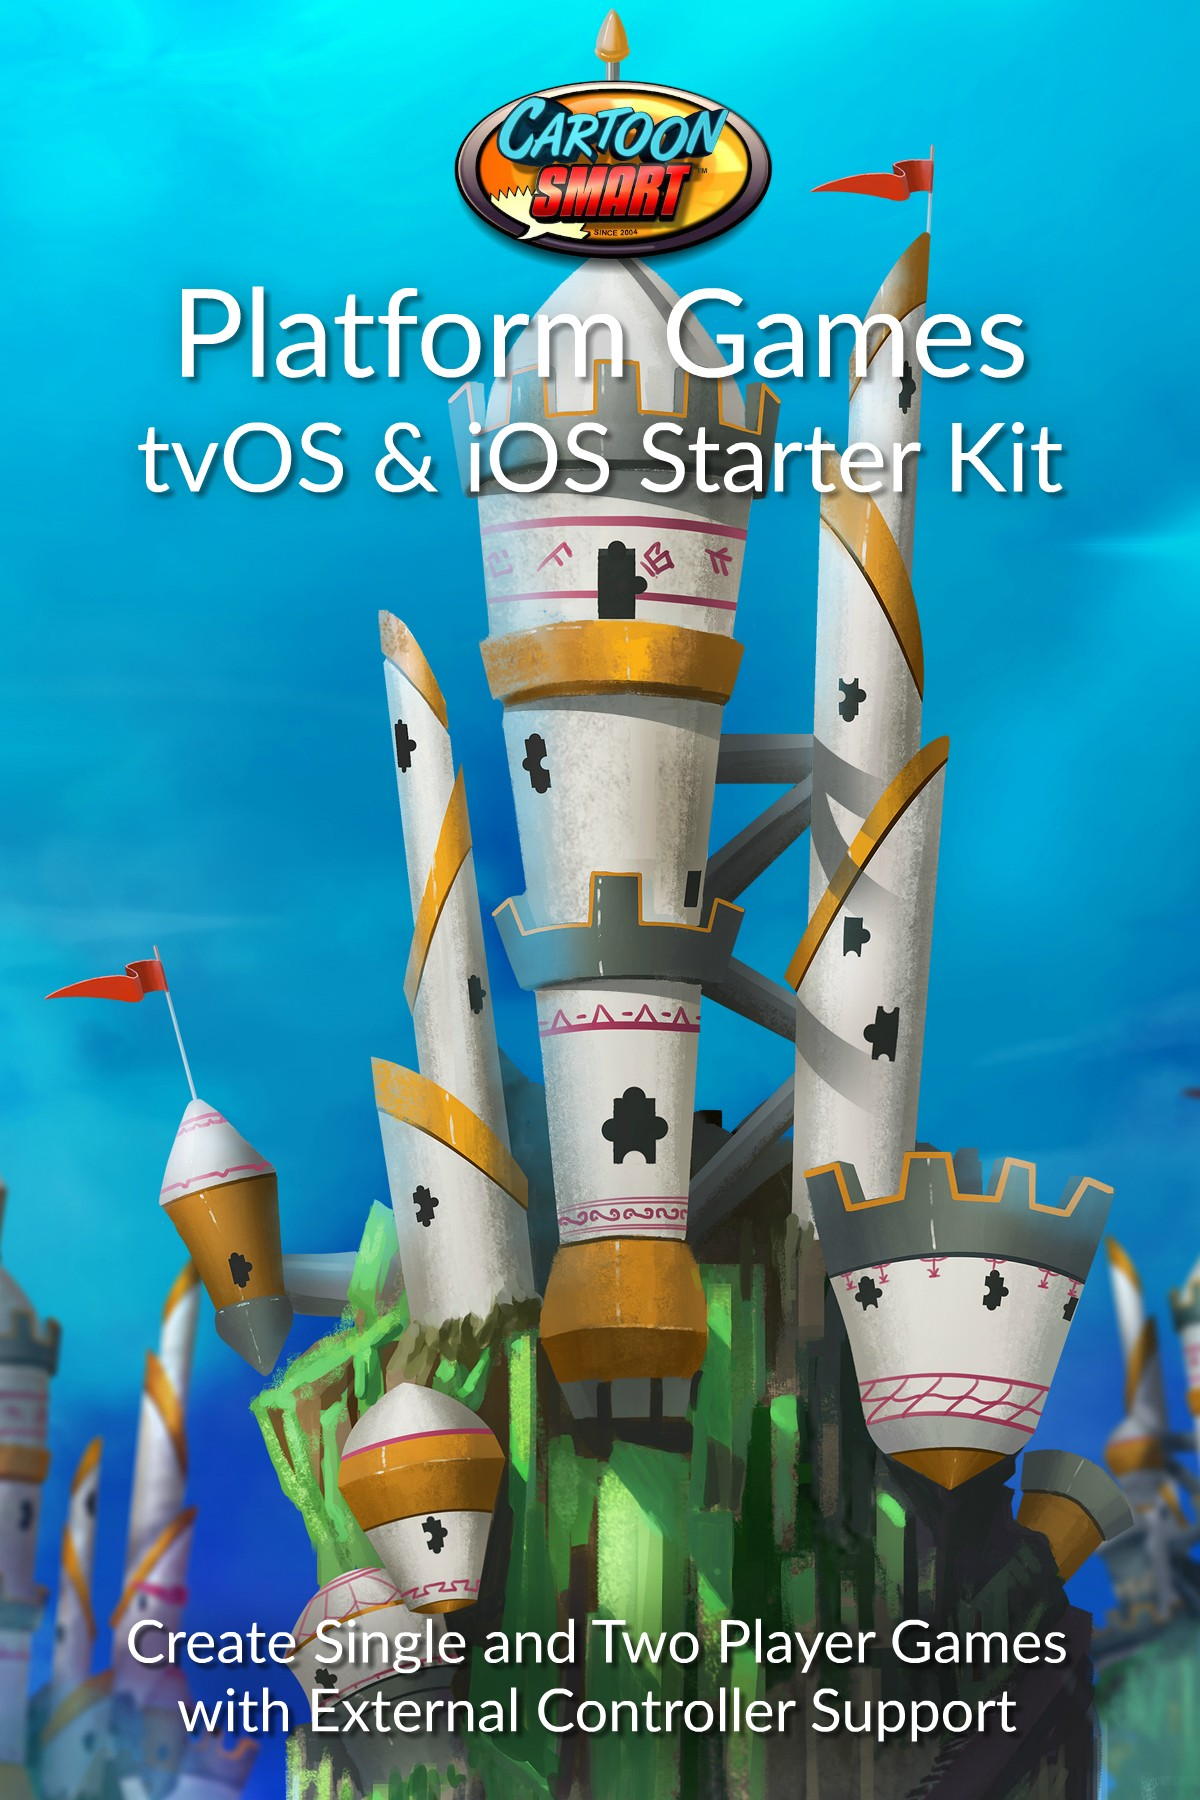 tvOS iOS Platform Games Starter Kit Box